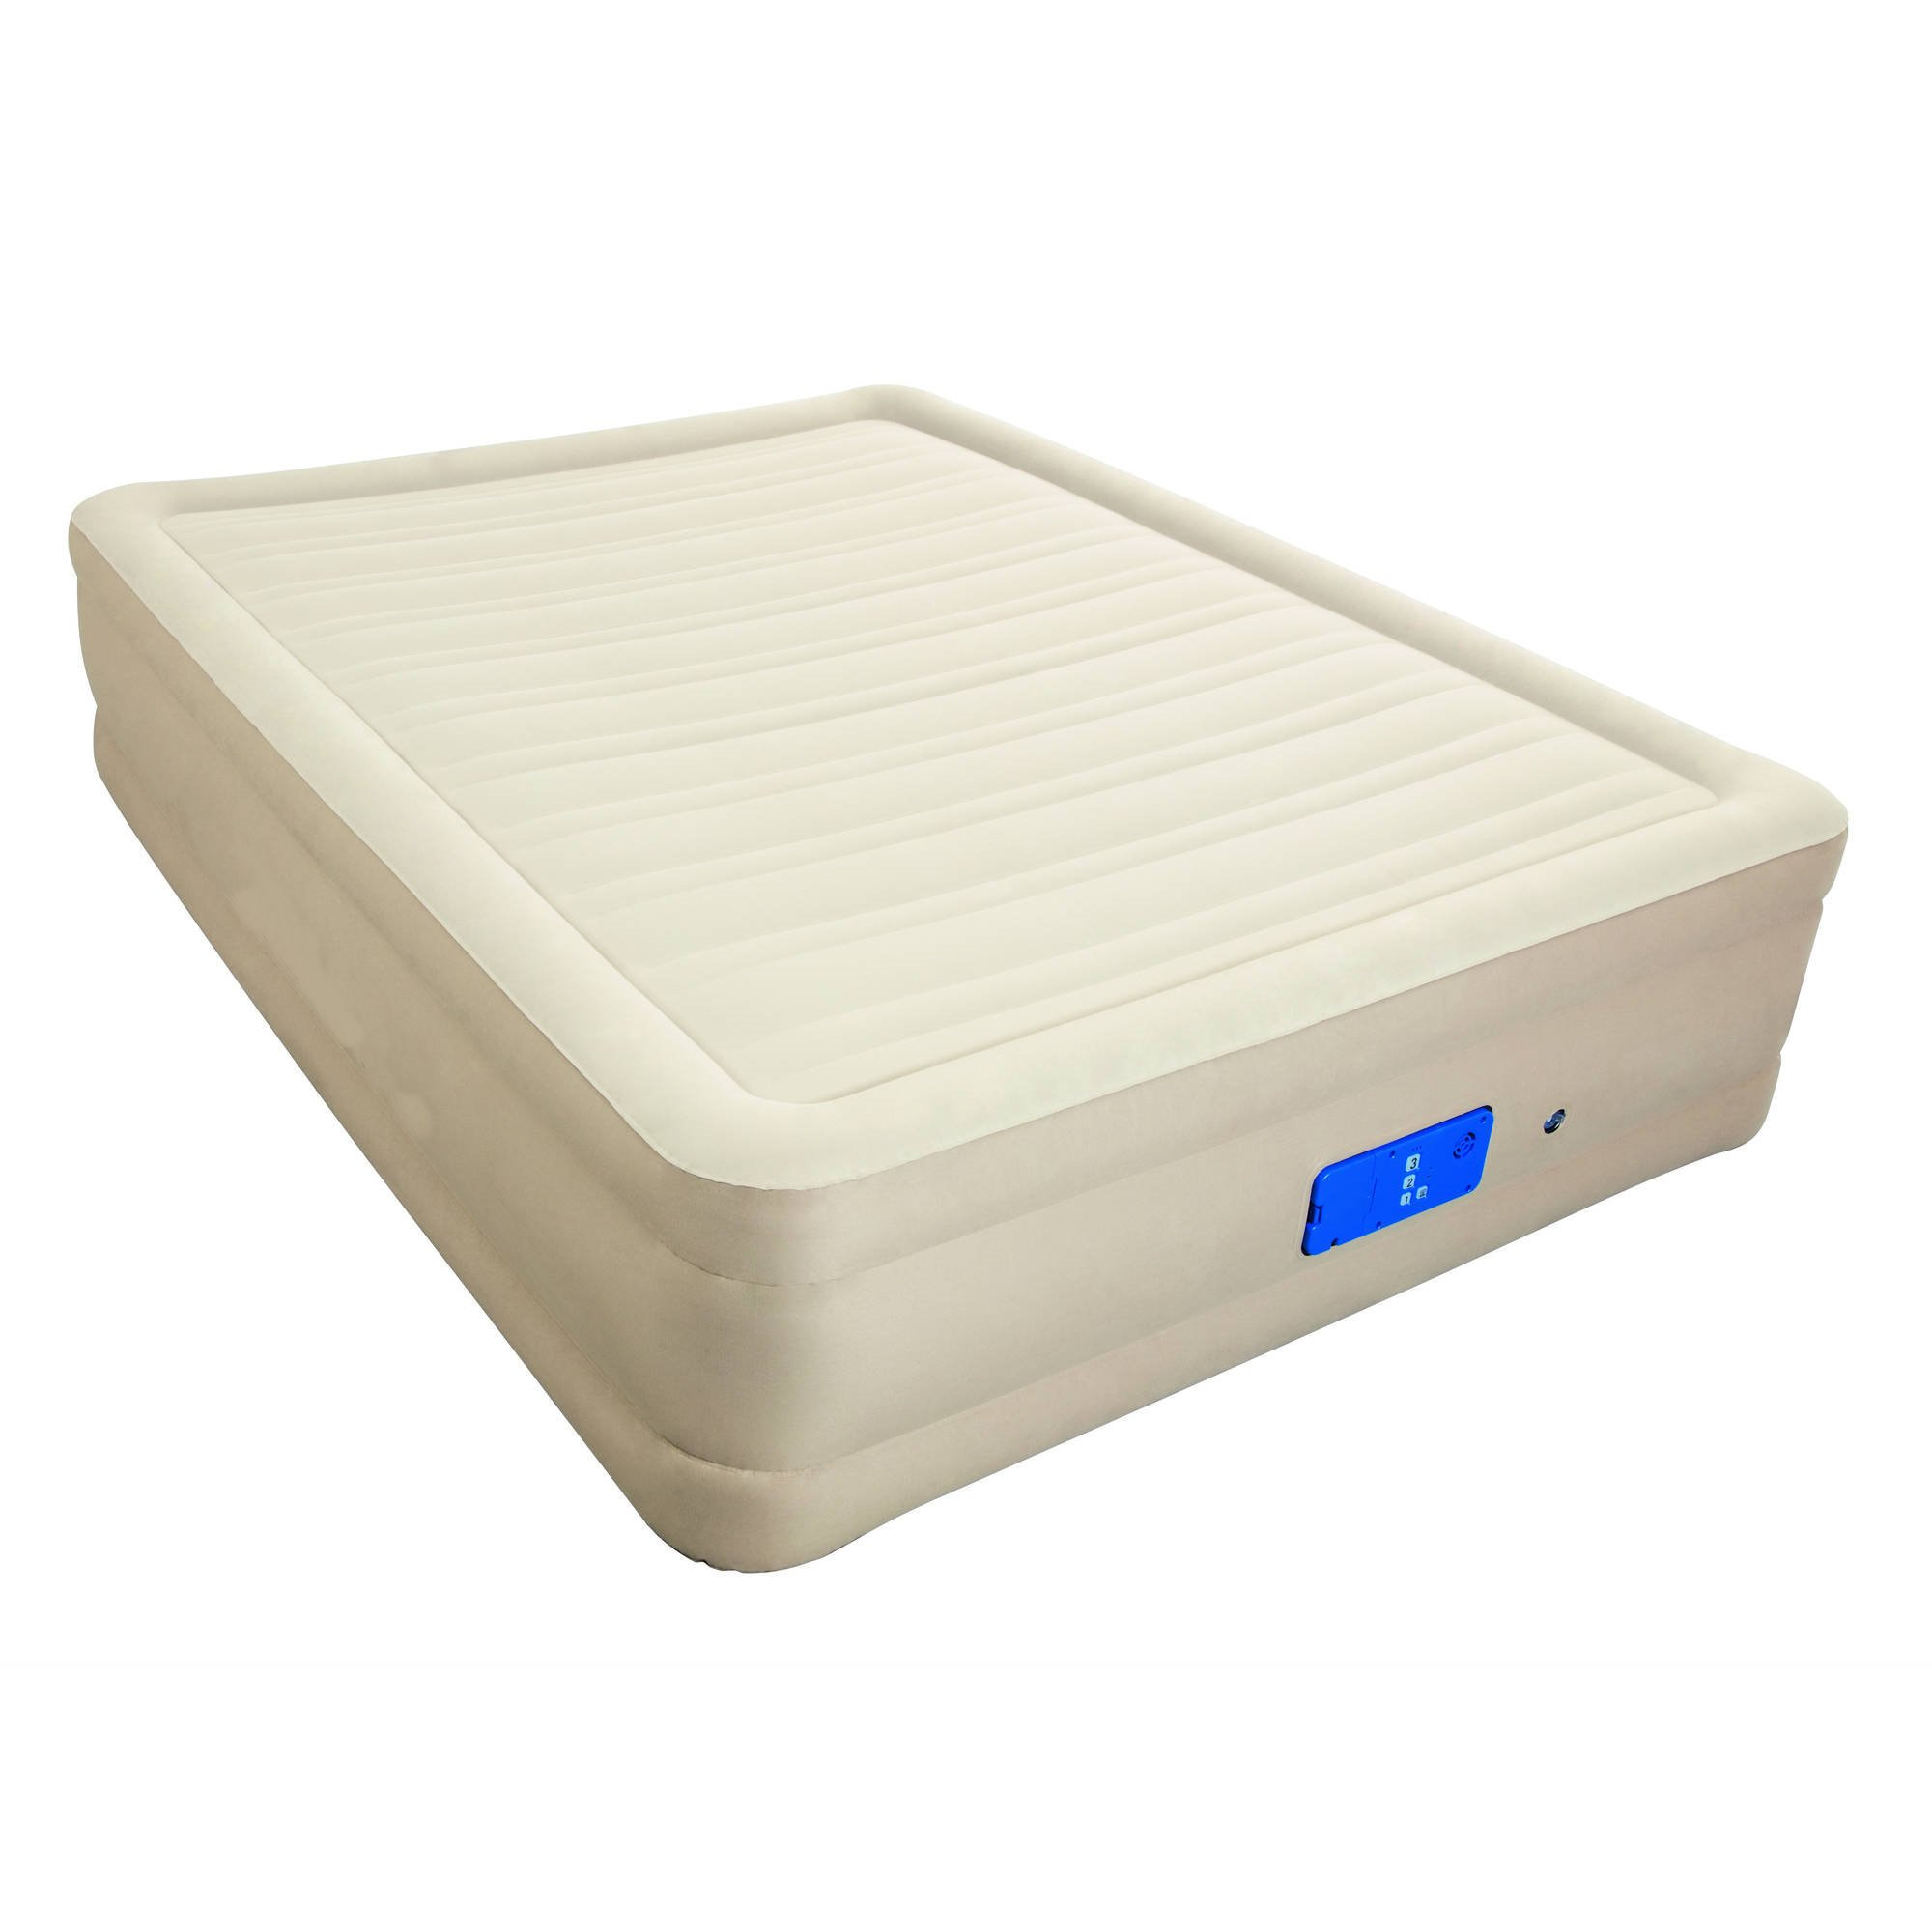 Air Mattress. This 17'' 3 Comfort Levels Blow Up Airbed With Built In Electric Pump For Rest, Deep Healthy Sleep, Adults, Indoor & Outdoor. Inflatable Bed Is Best As Camping Or Guest Bed & Sleepover.